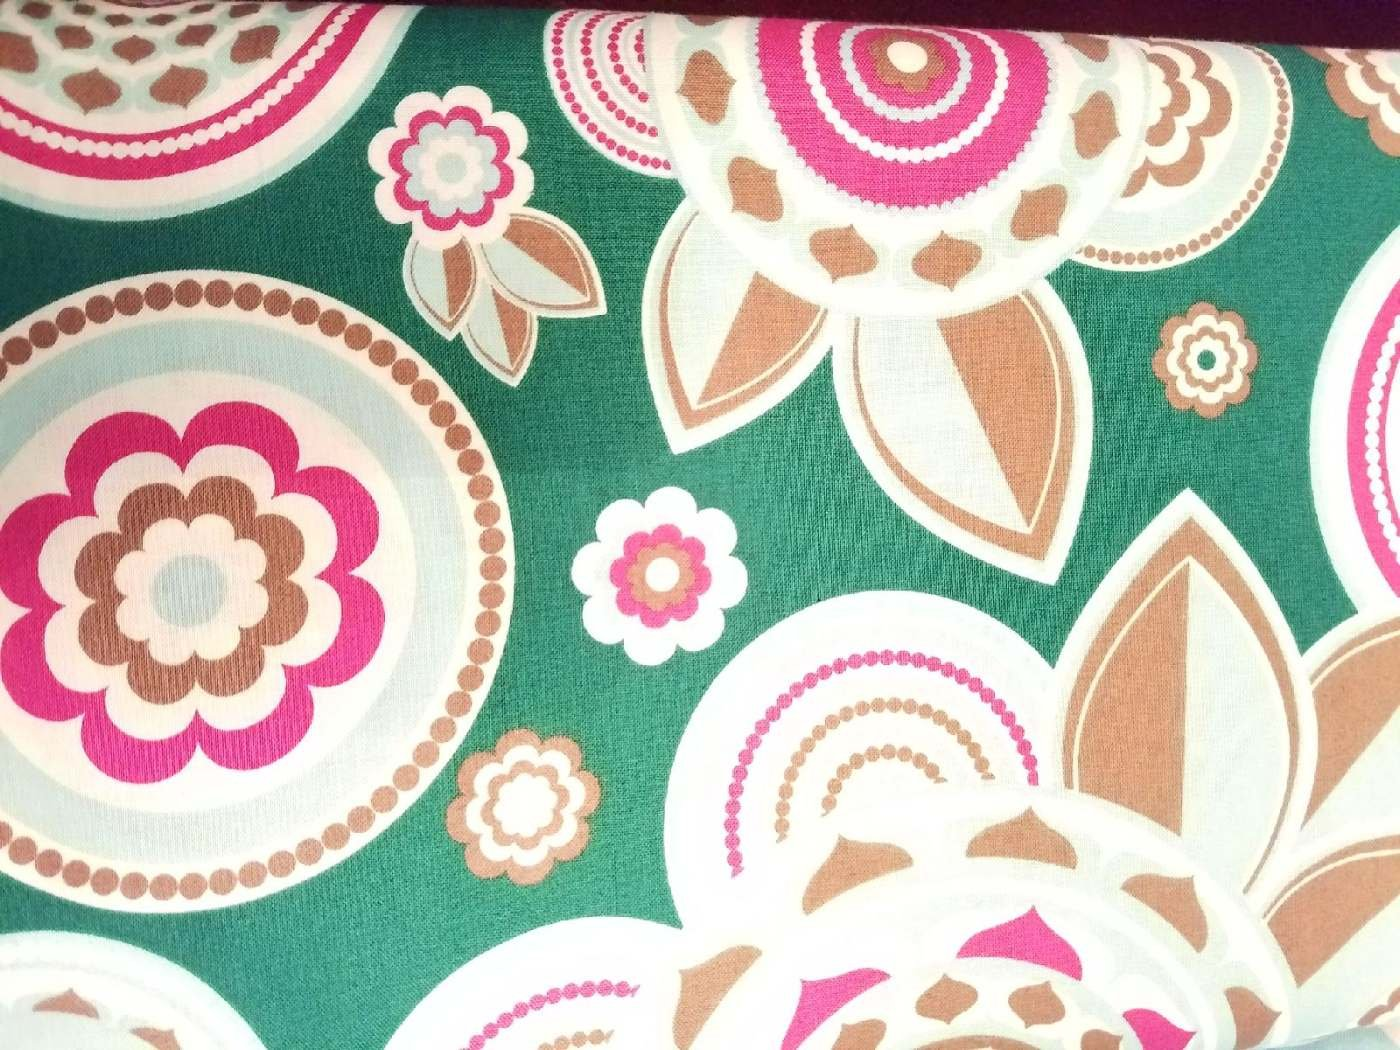 Andover Fabrics Dazzle by Melissa Averinos Modern Large Floral